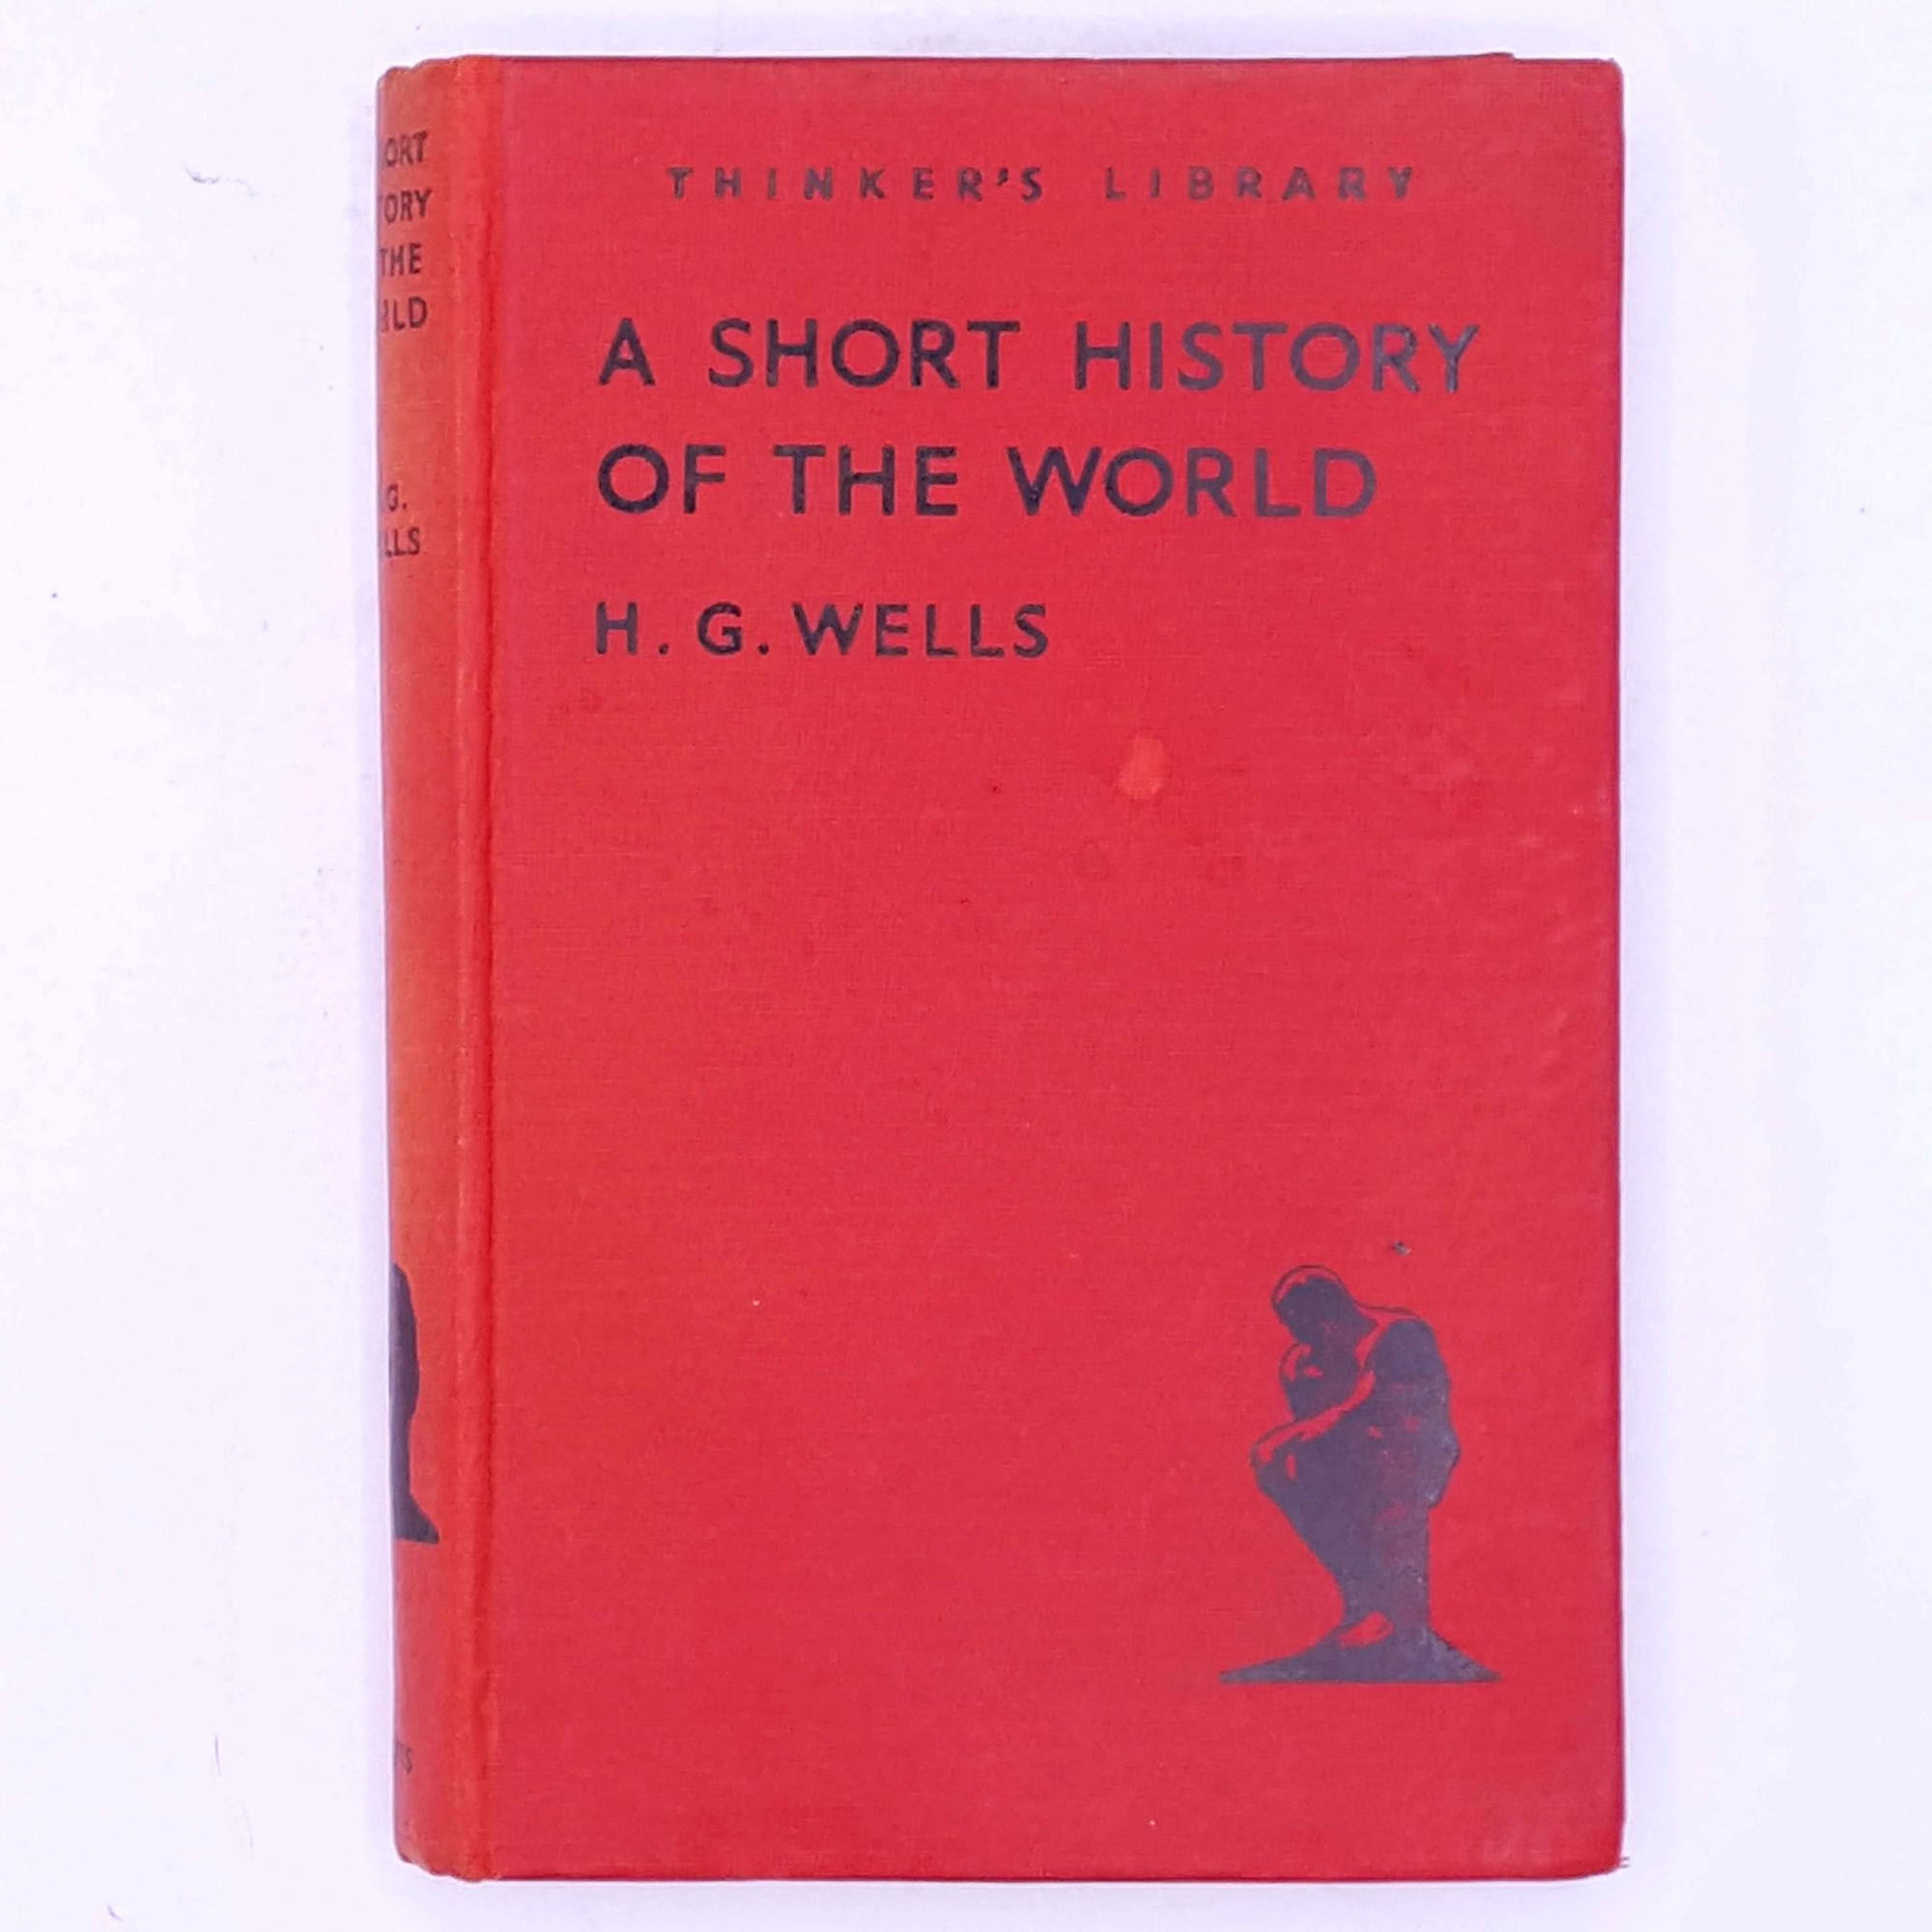 decorative-H.G.-Wells- thrift-science-fiction-country-house-library-classic-A-Short-History-of-the-World-patterned-short-stories- antique-old-short-story-vintage-books-